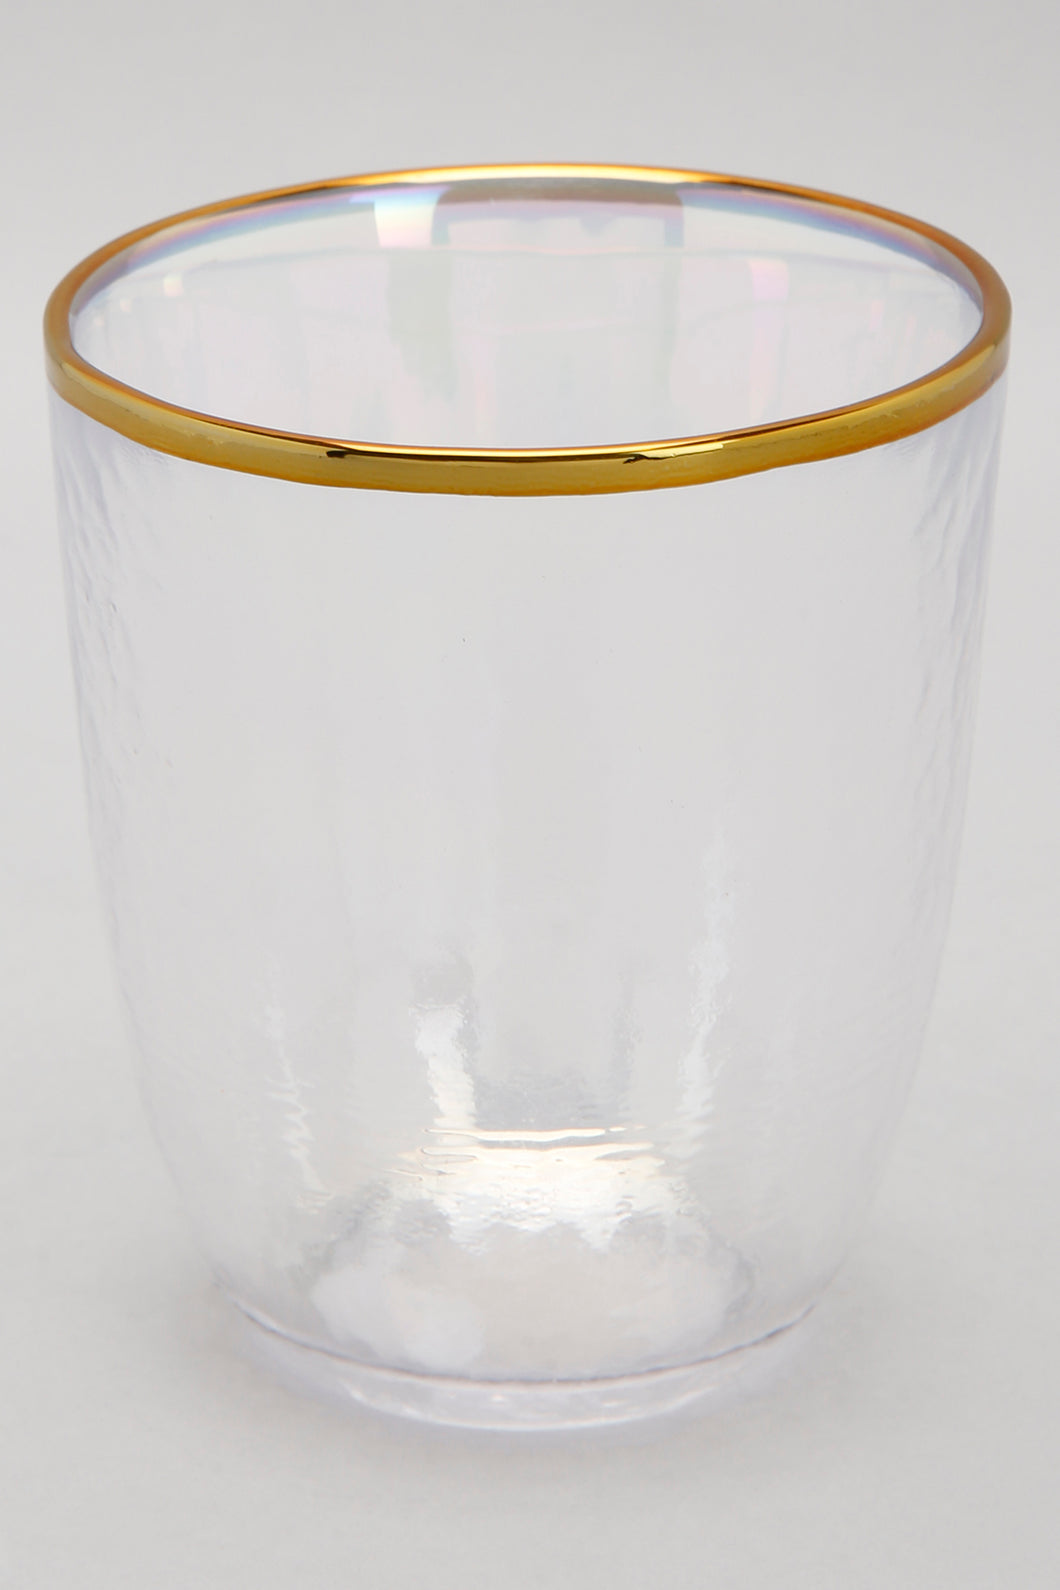 Iridescent Colour Gold Band Tumbler